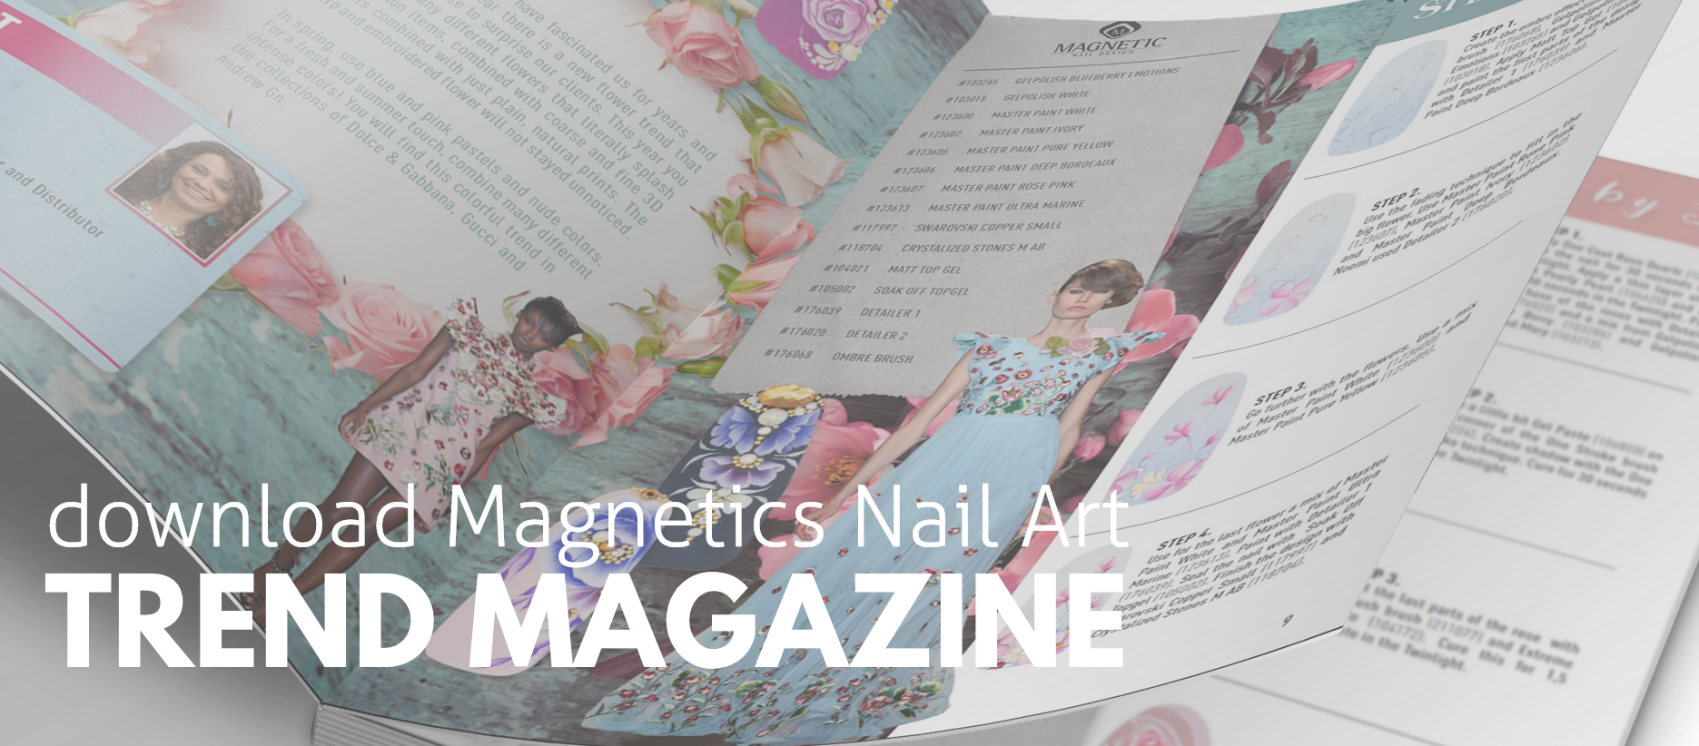 Download Magnetics Nail Art Trend Magazine